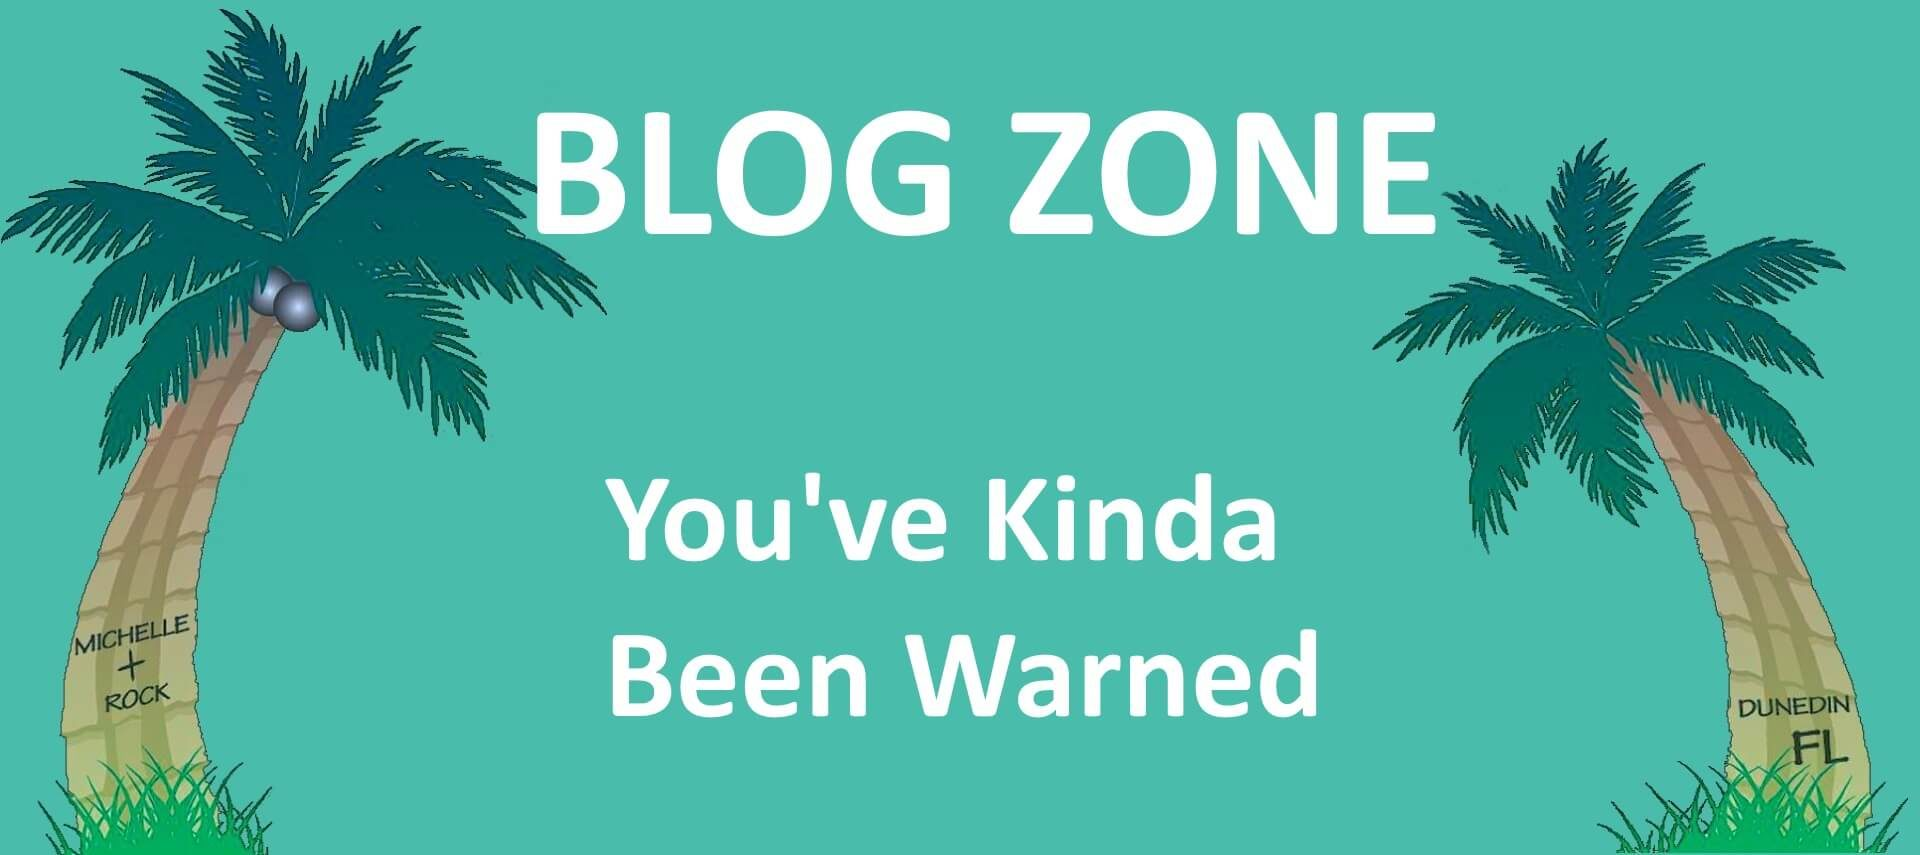 Aqua background with two palm trees and test: Blog Zone You've Kinda Been Warned